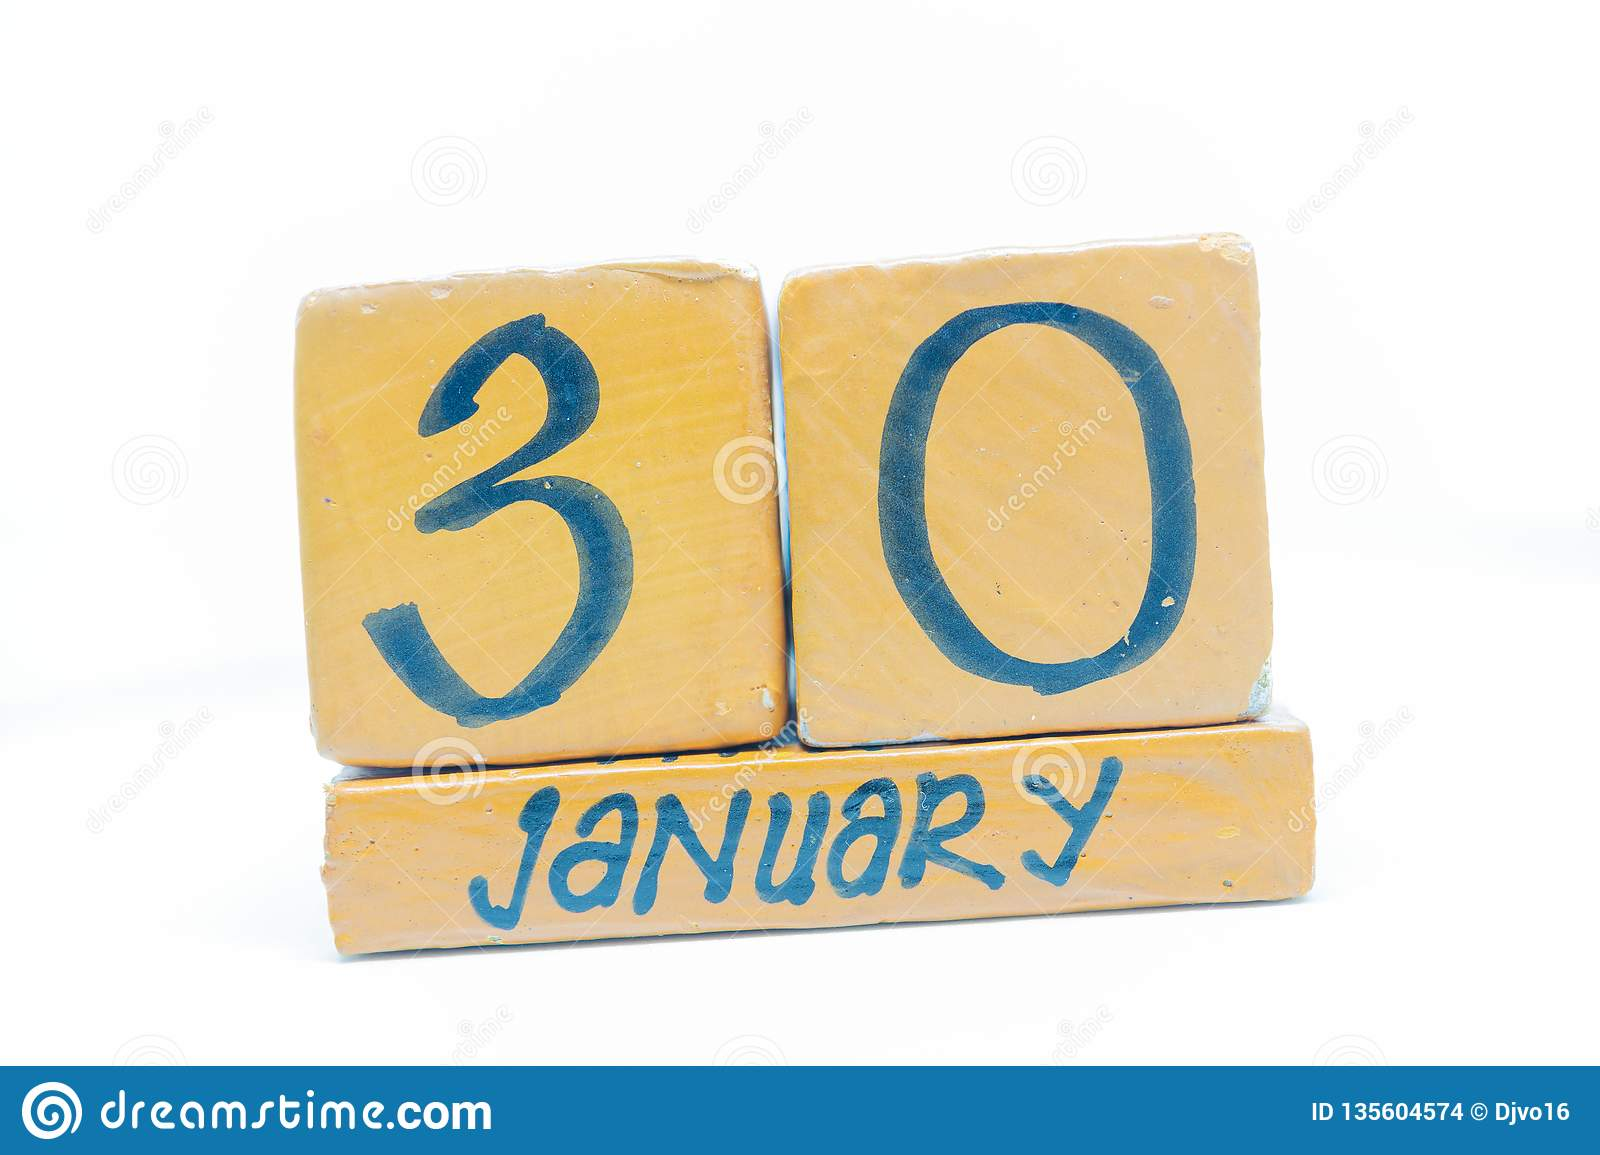 First Time Home Sellers Seminar on January 30th - Zercher